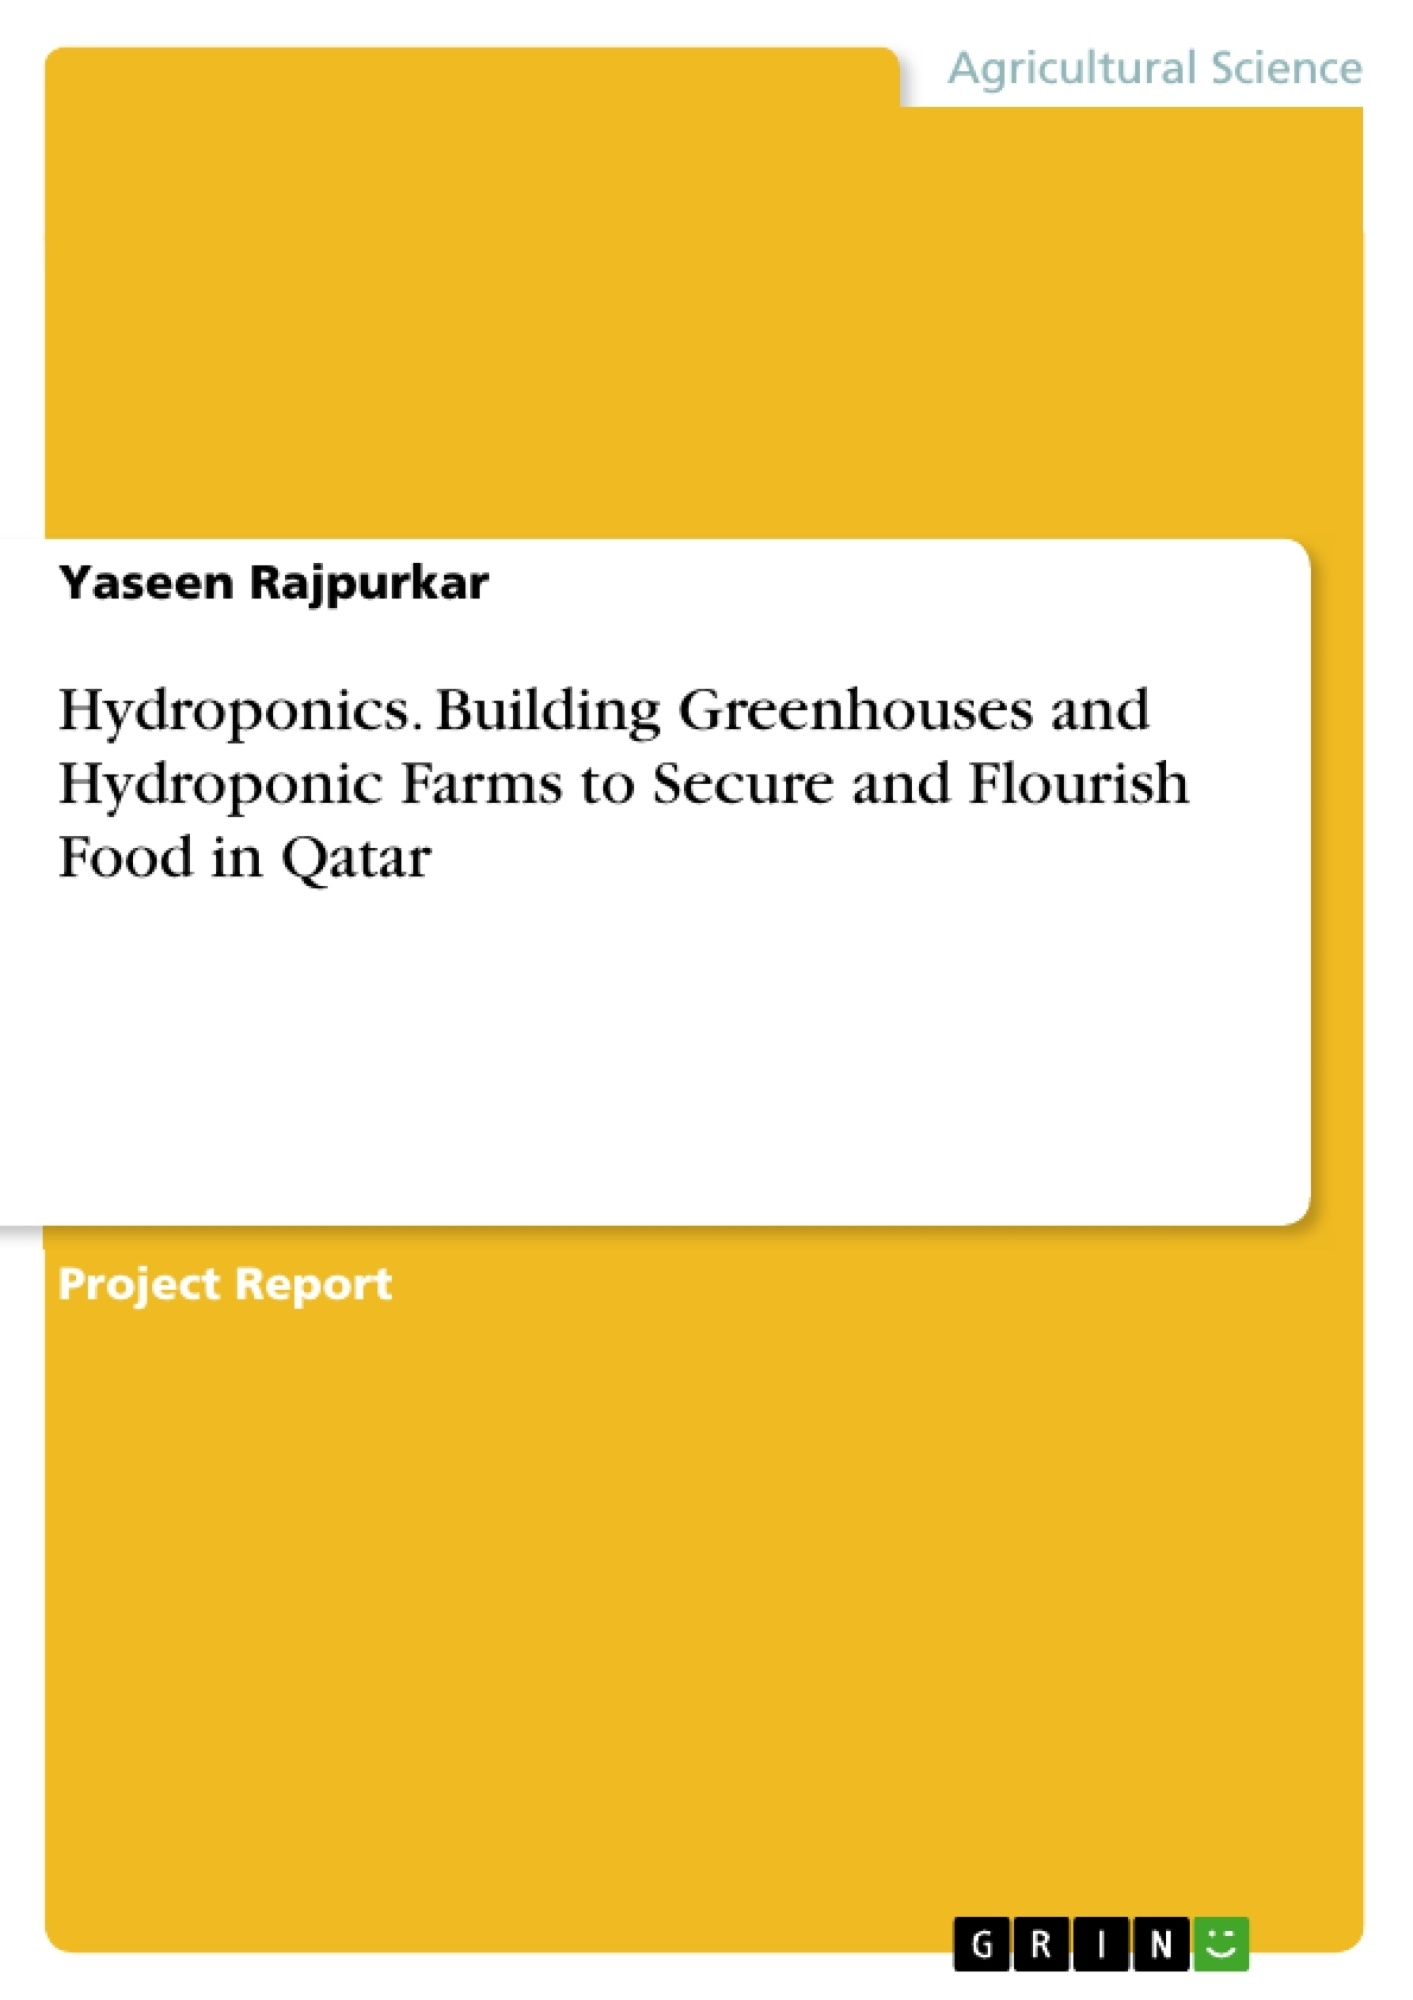 GRIN - Hydroponics  Building Greenhouses and Hydroponic Farms to Secure and  Flourish Food in Qatar